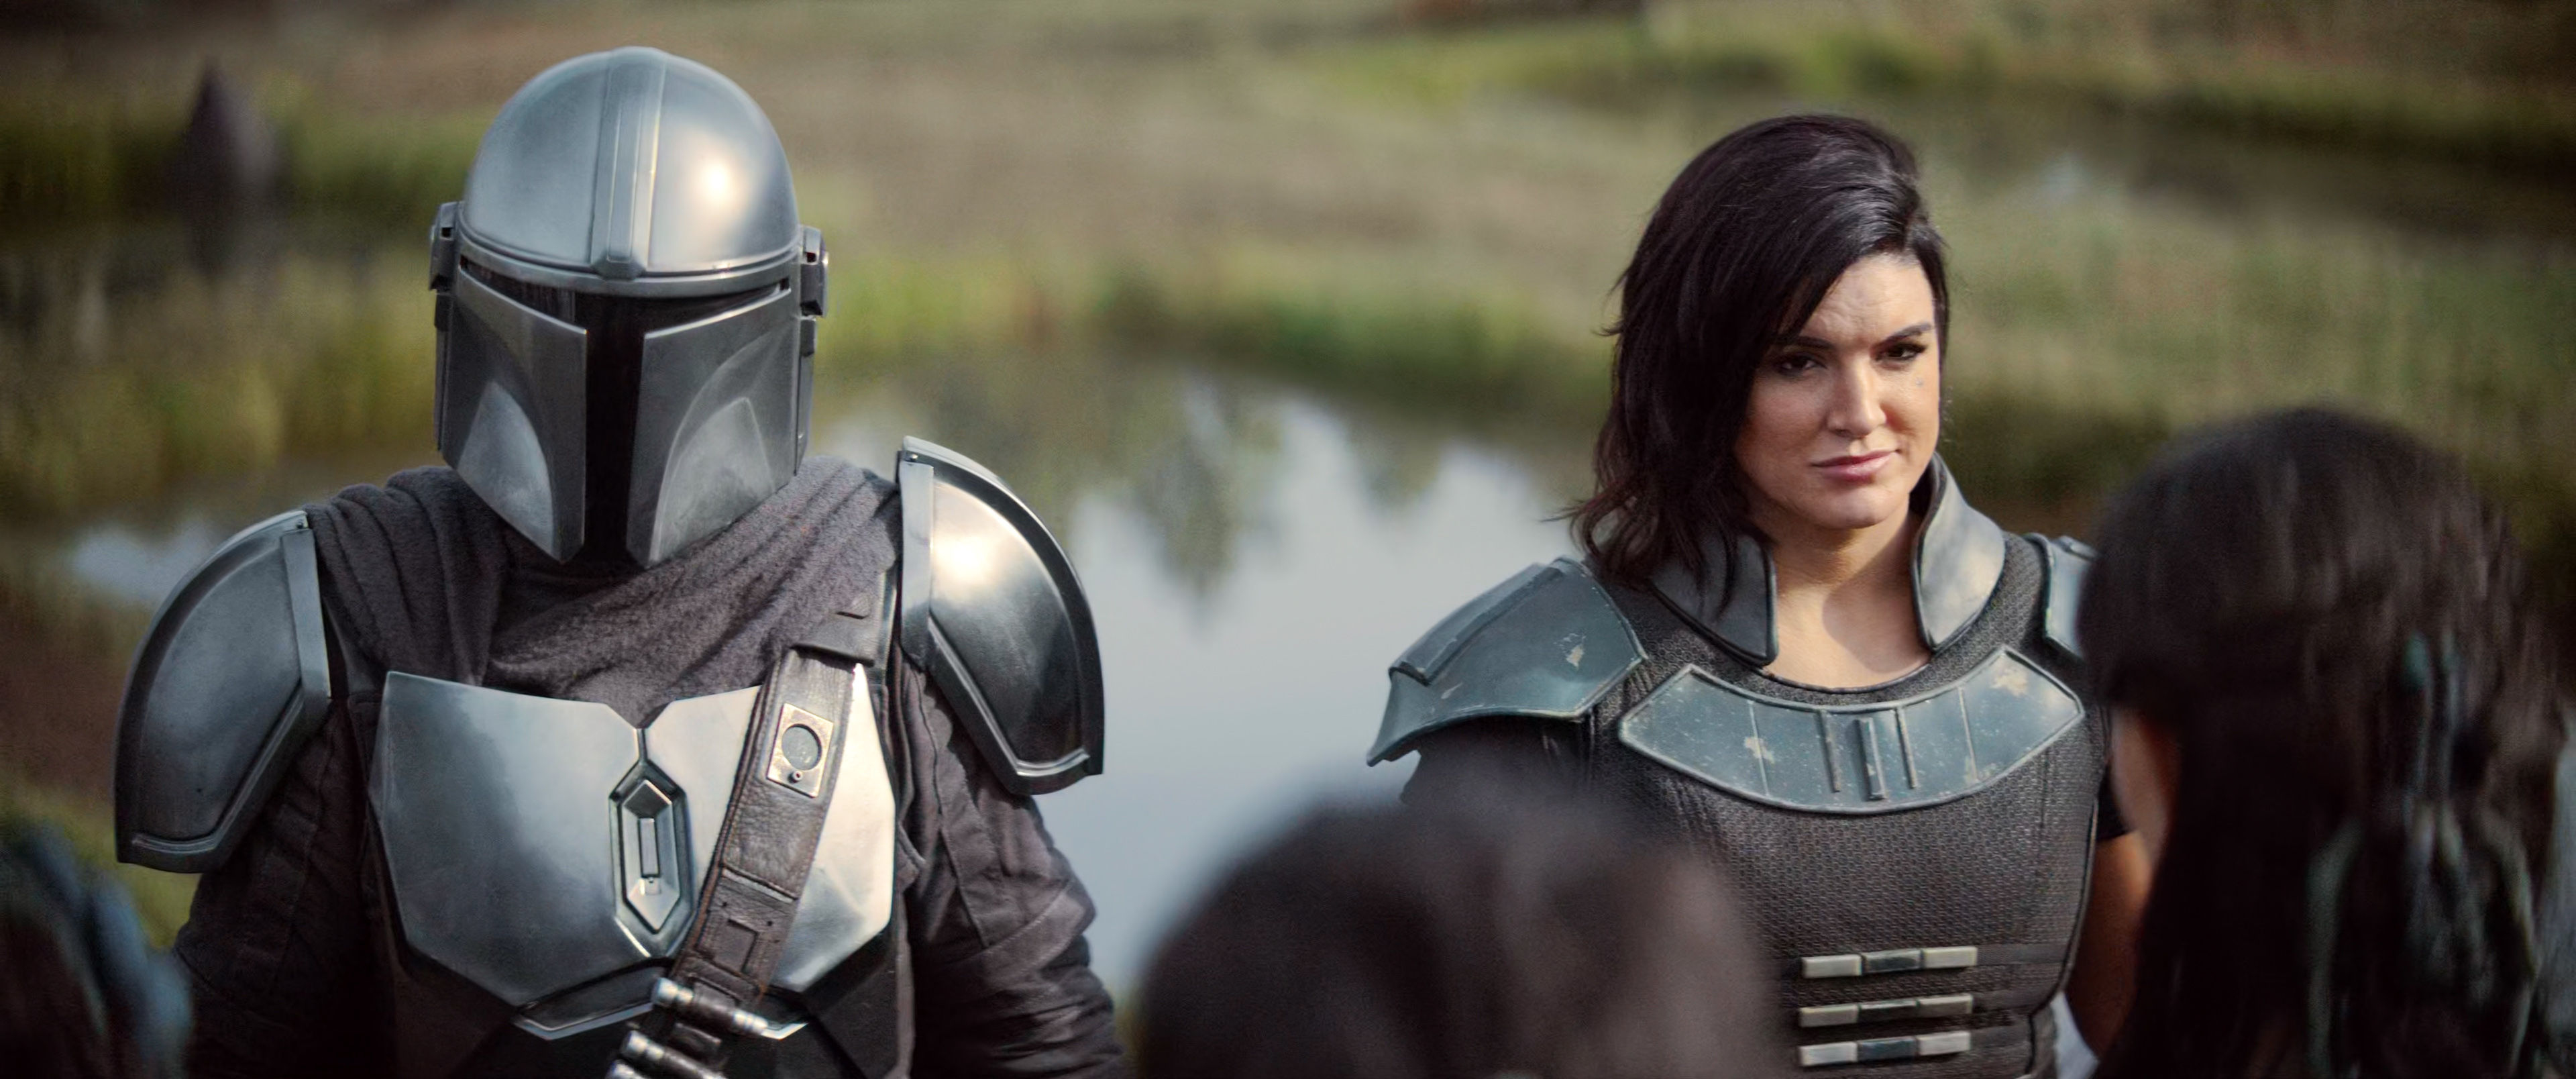 Chapter 4: Sanctuary - The Mandalorian S01E04 | TVmaze